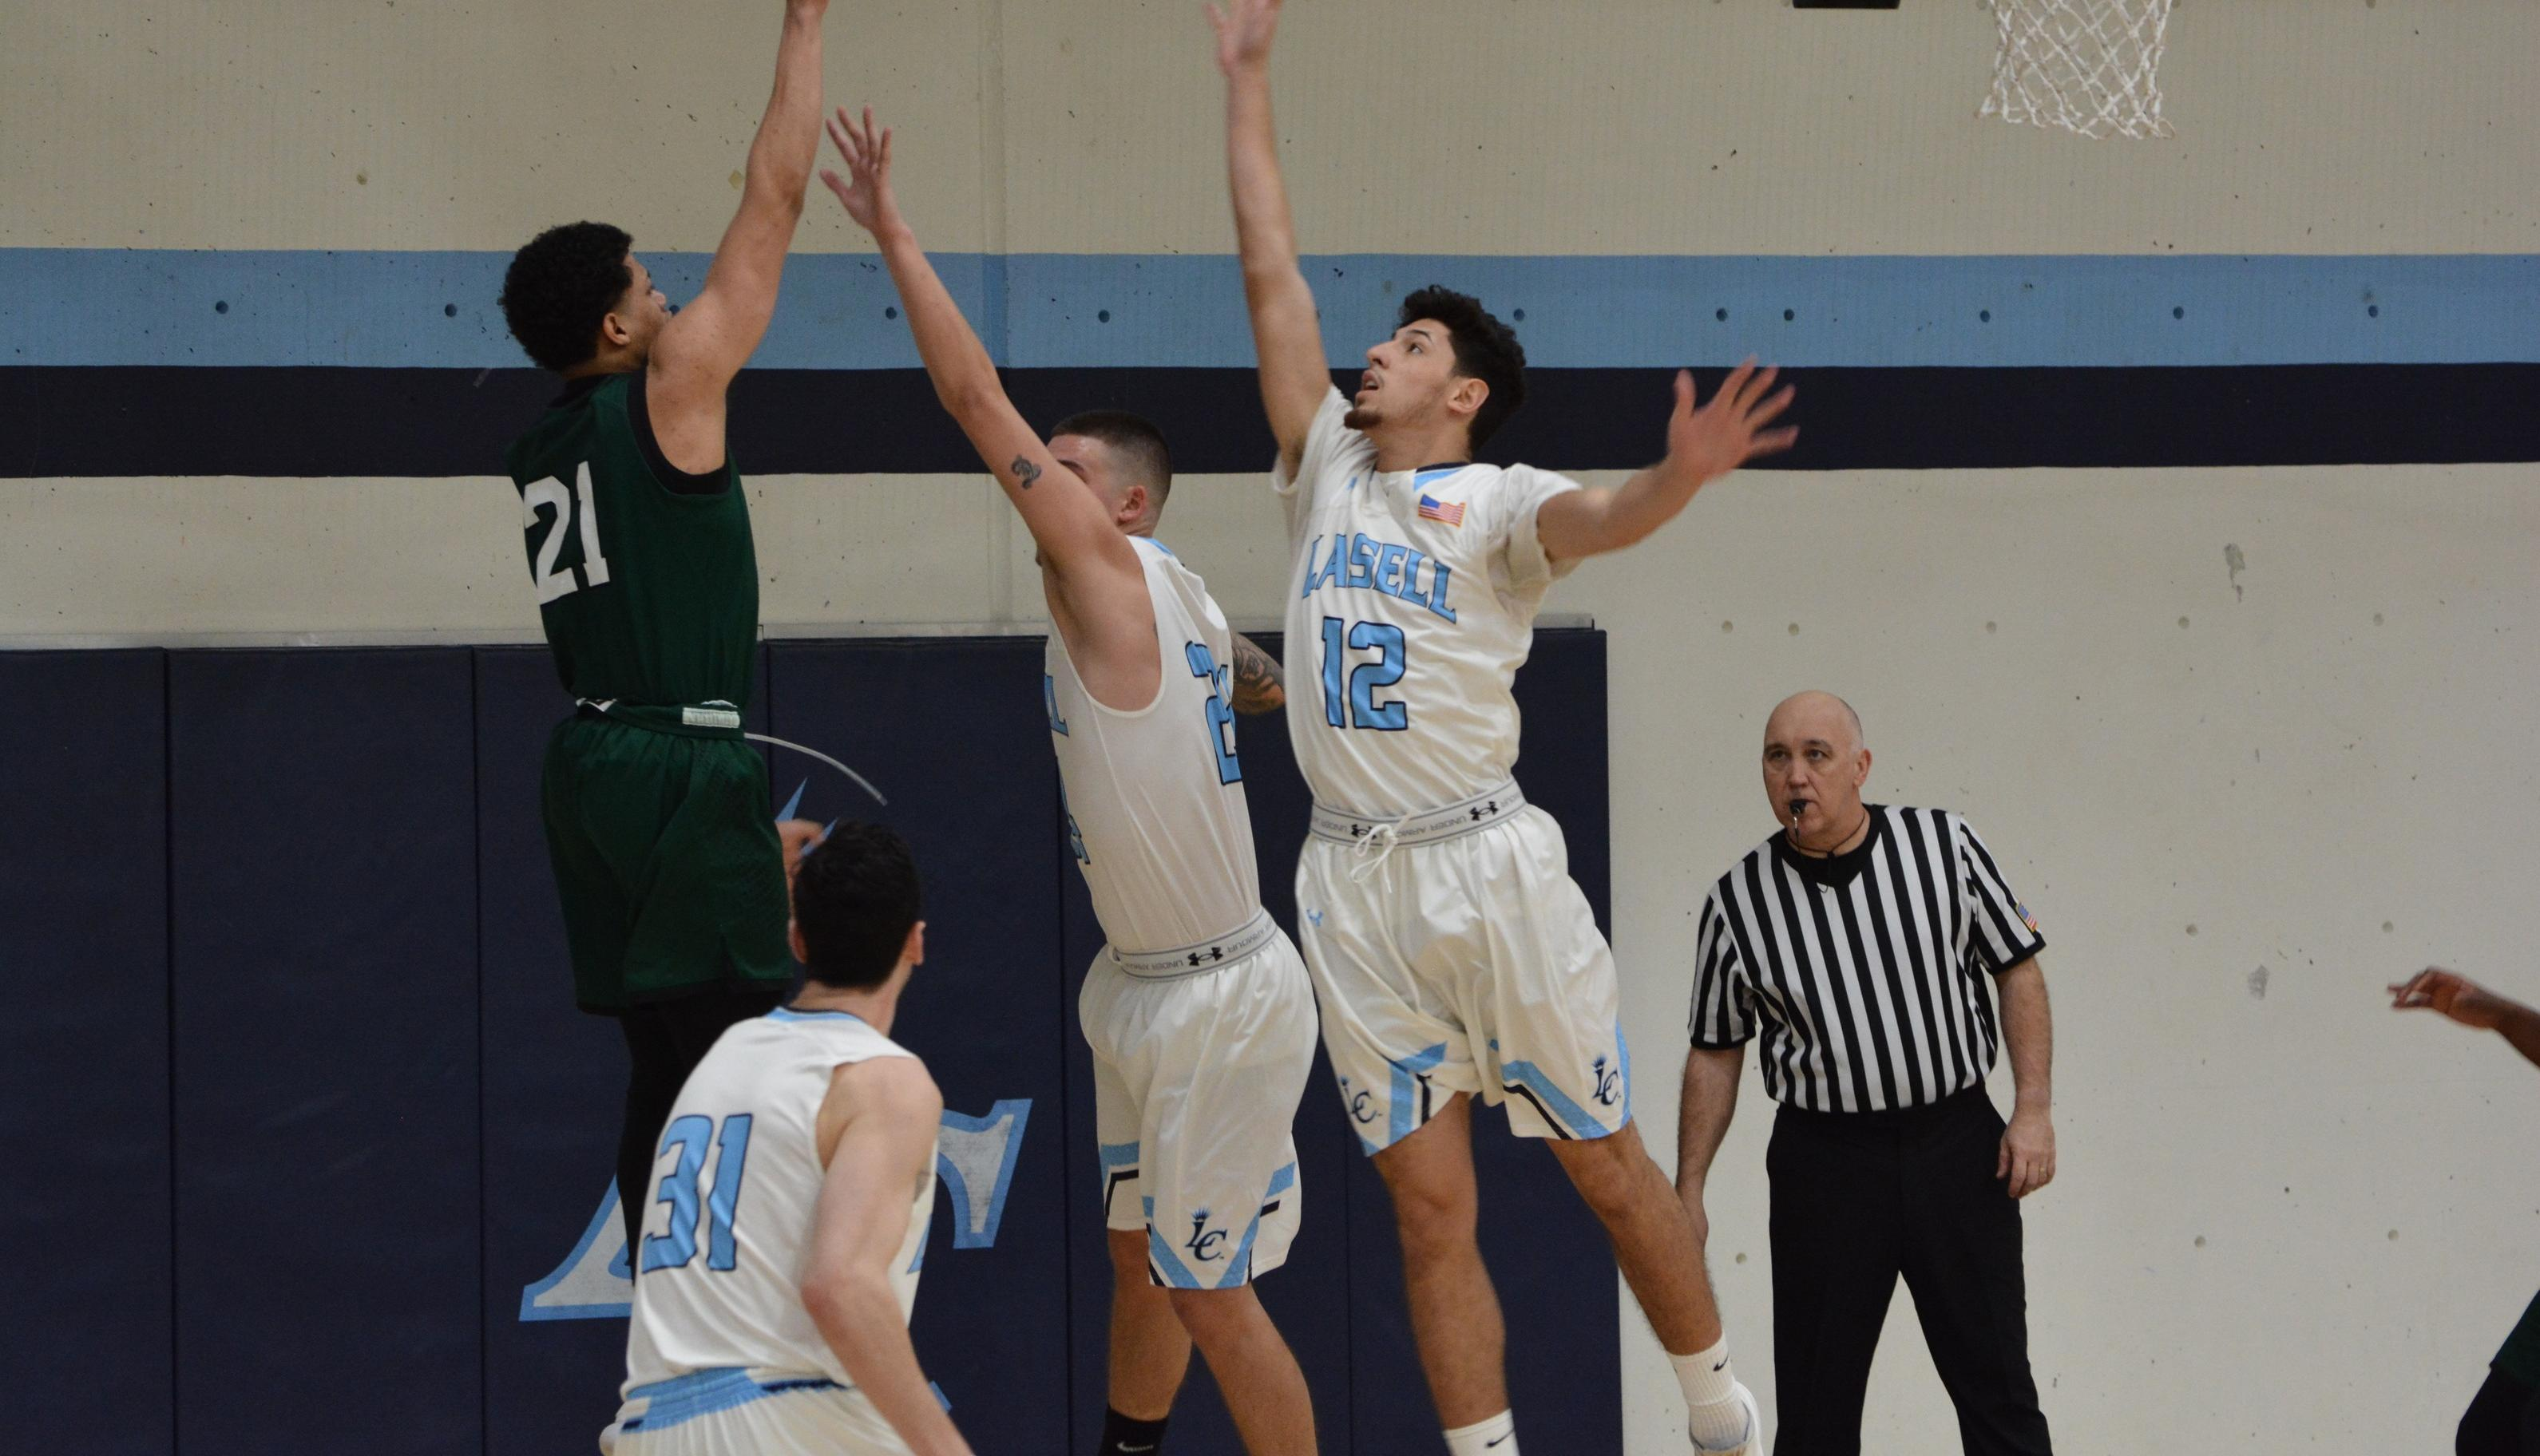 Lasell Men's Basketball drops GNAC game at Albertus Magnus